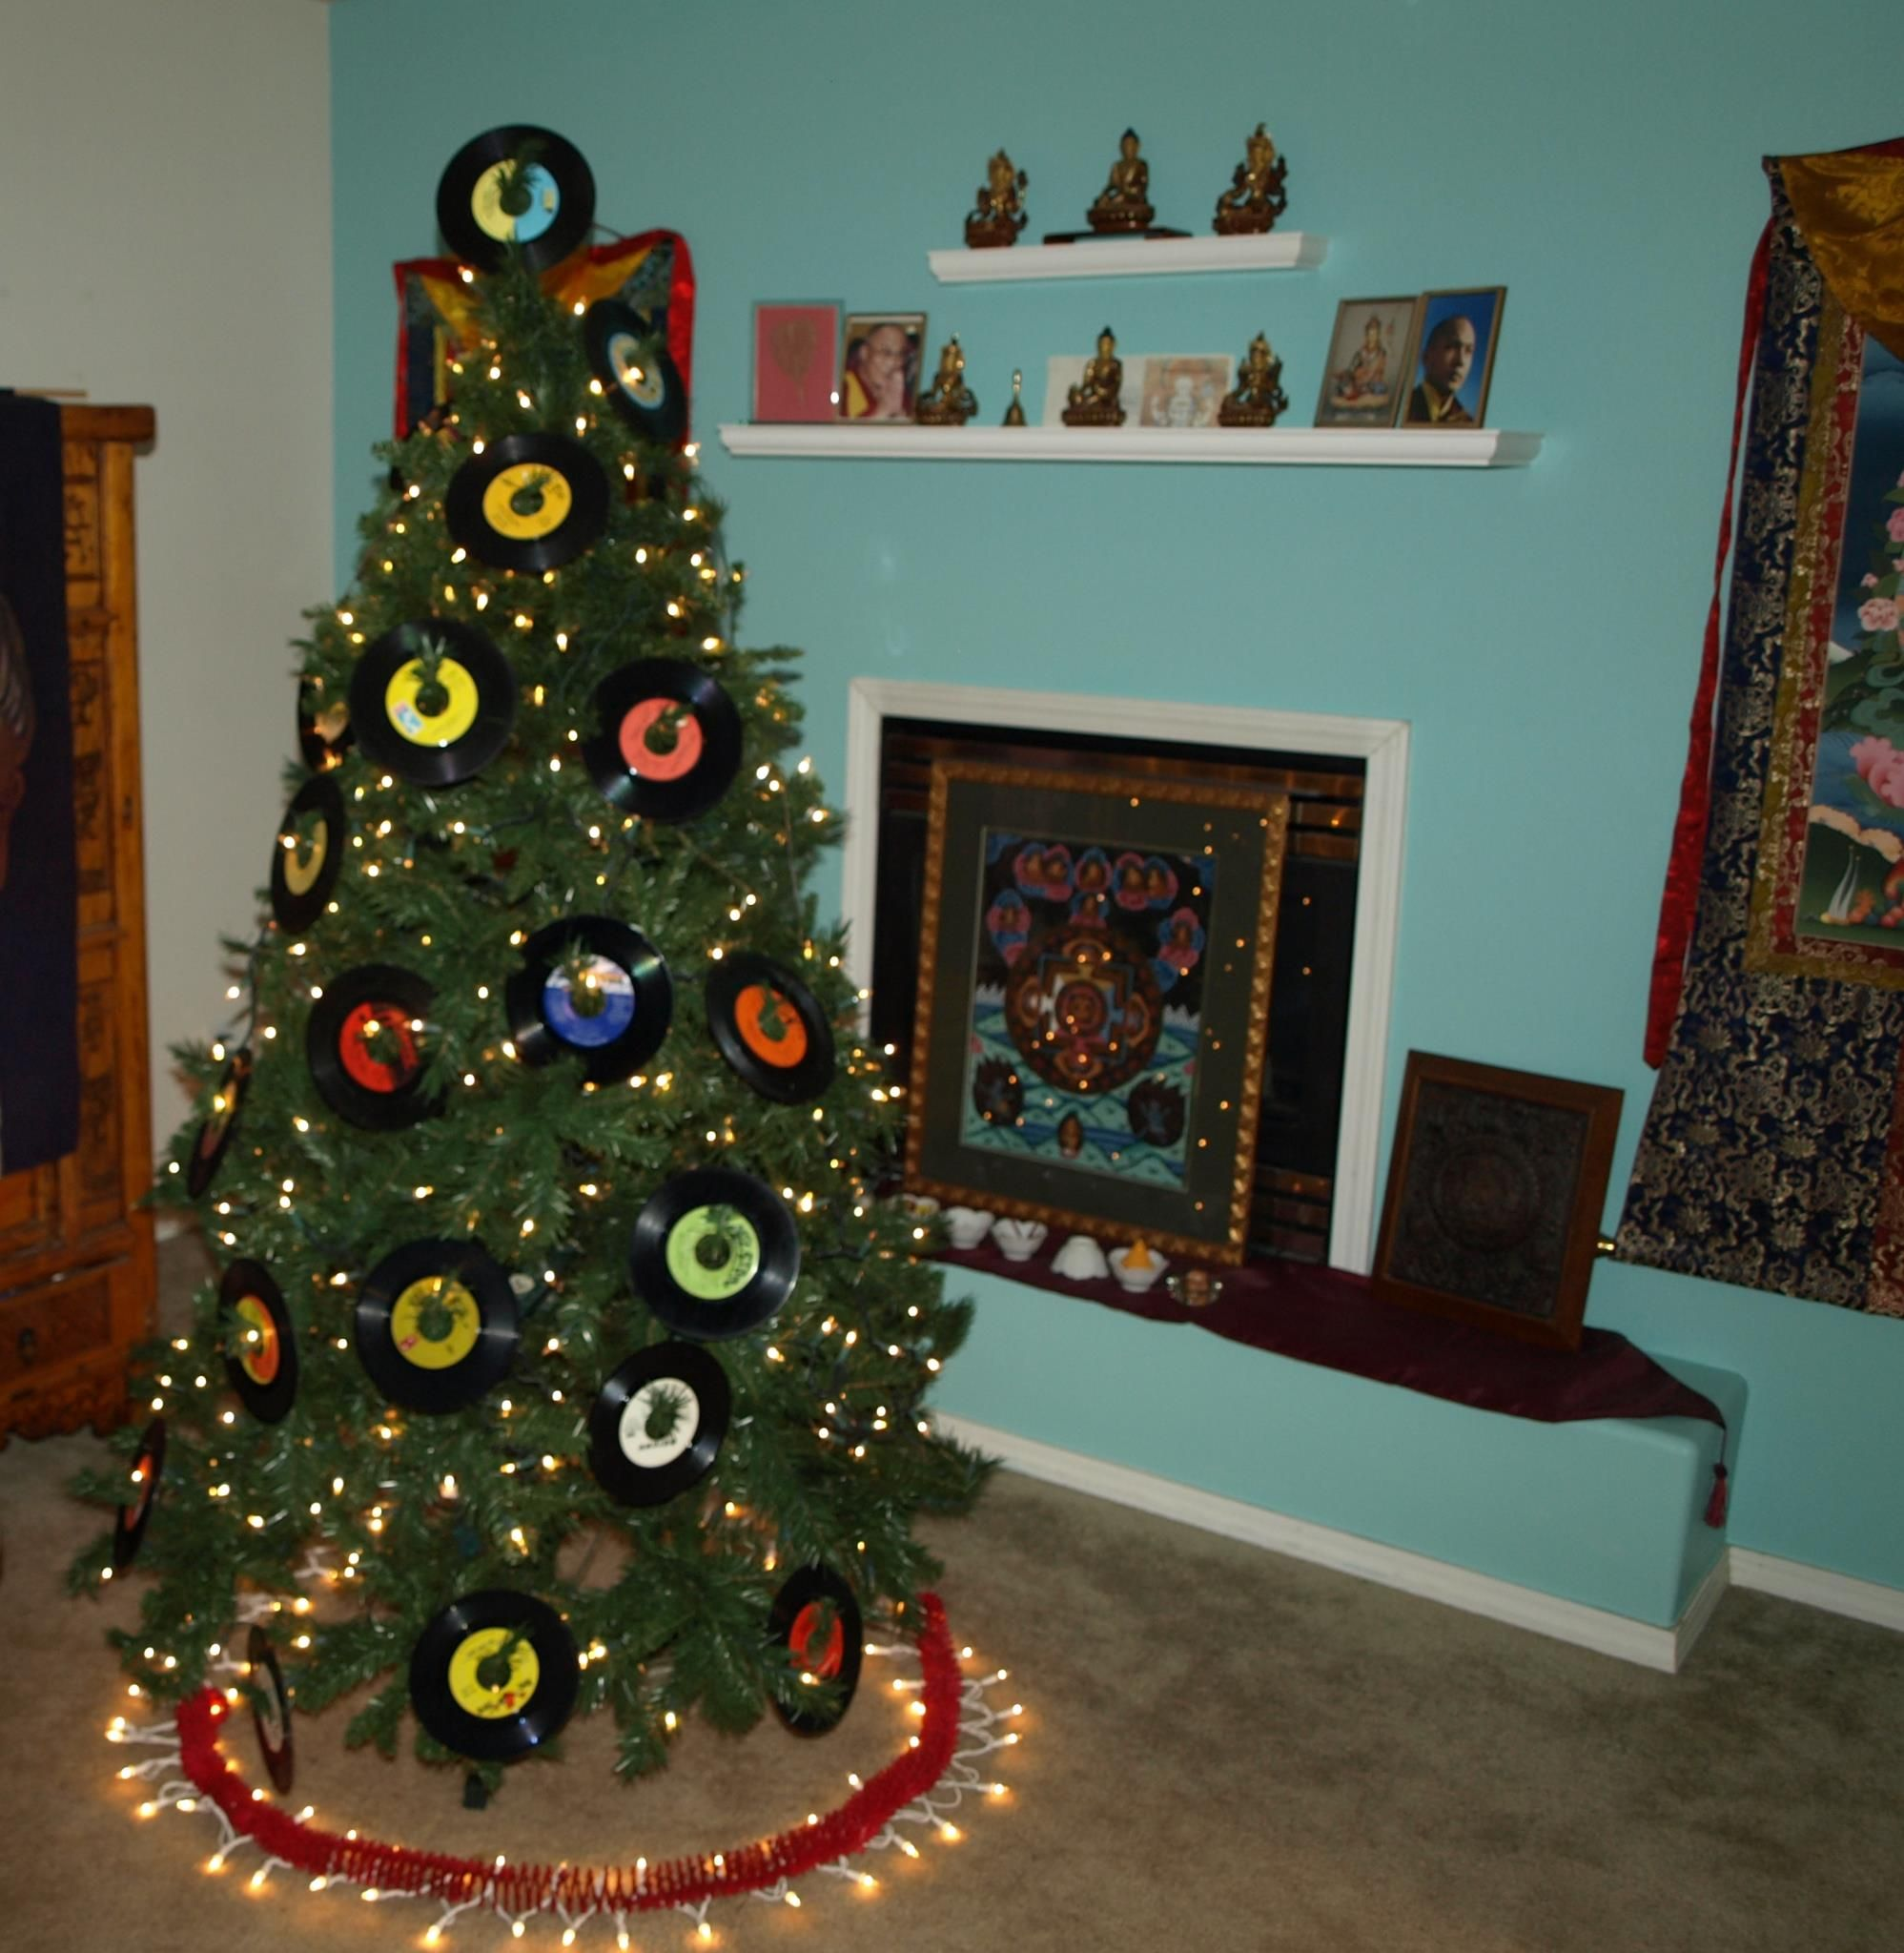 High Quality Rock And Roll Christmas Tree Meets Buddhist Shrine Vintage 45 Records